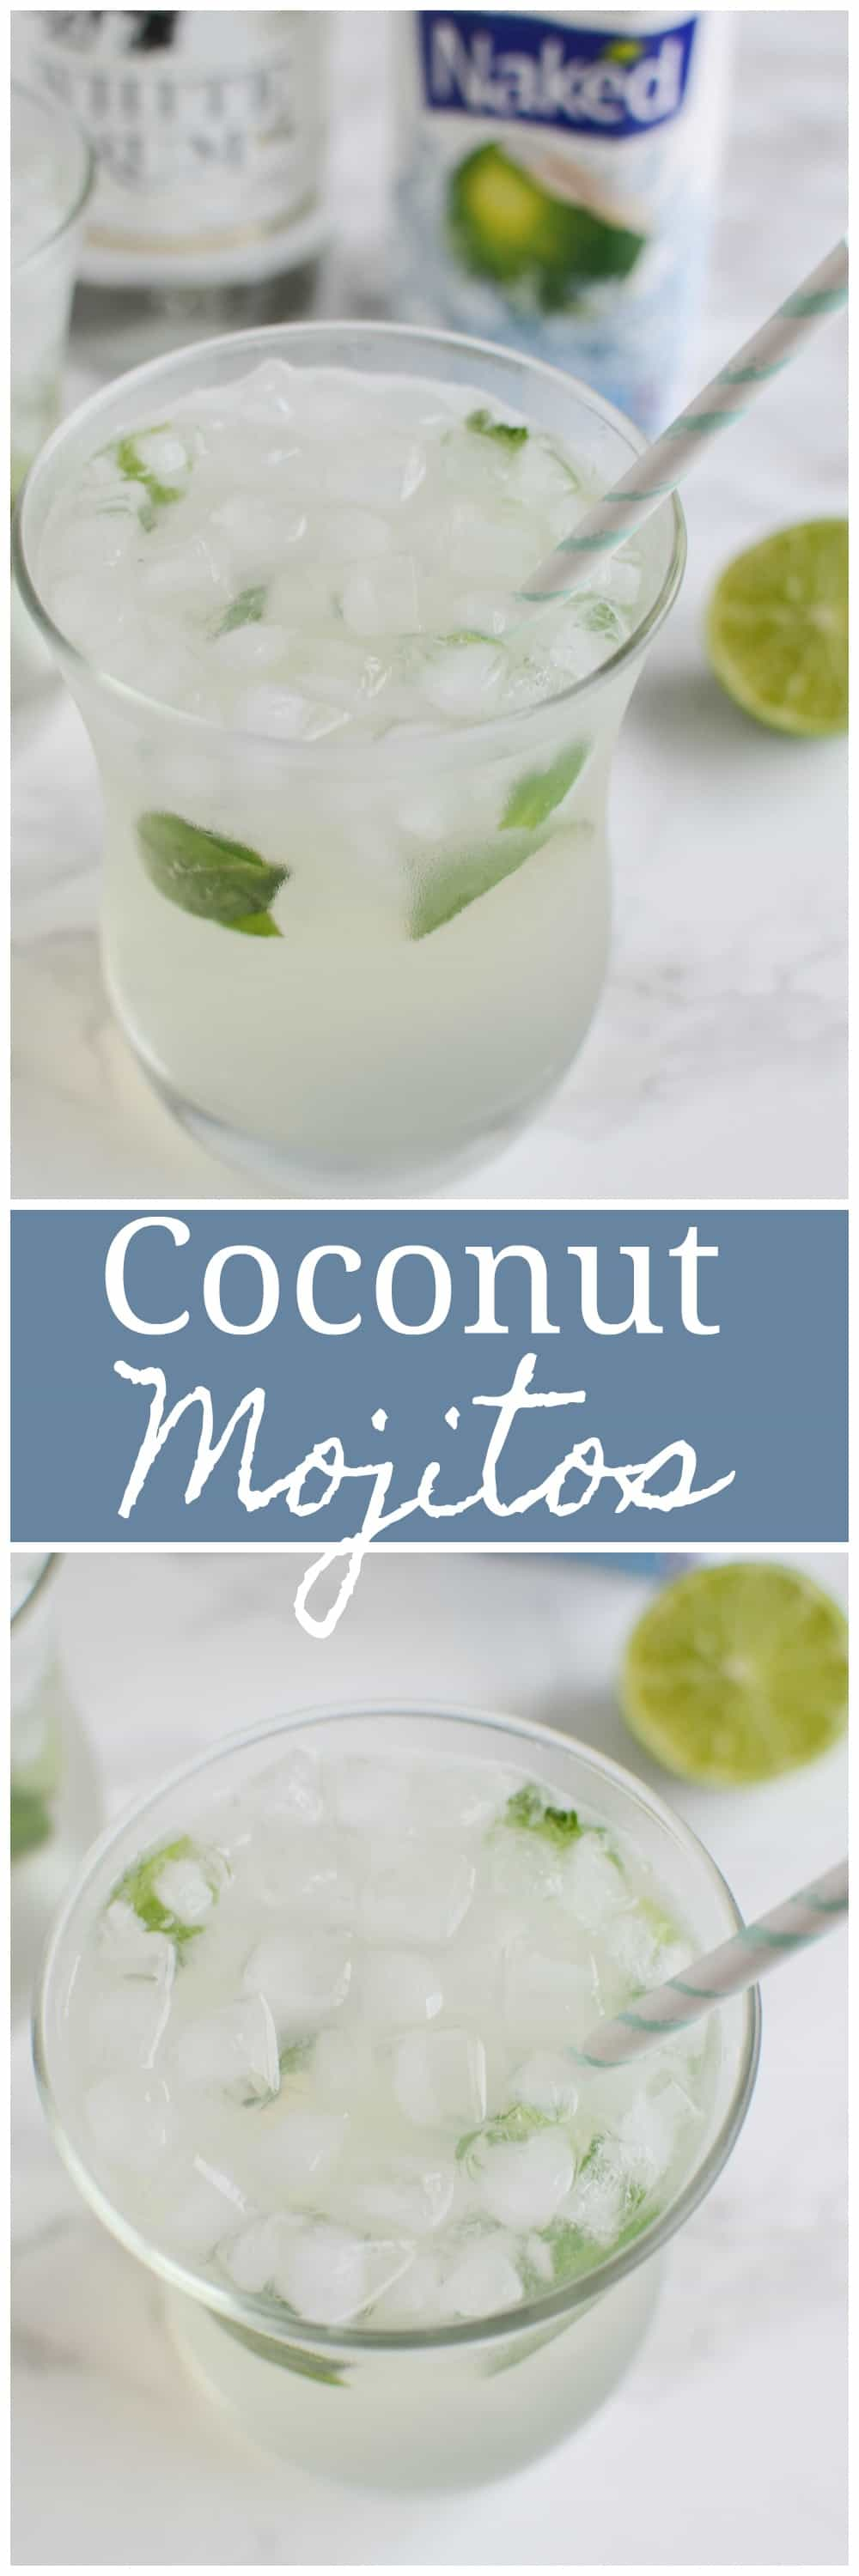 Skinny Coconut Mojito - the ultimate summer drink recipe! Coconut water, rum, limes, and mint! It's low calorie but still so delicious.